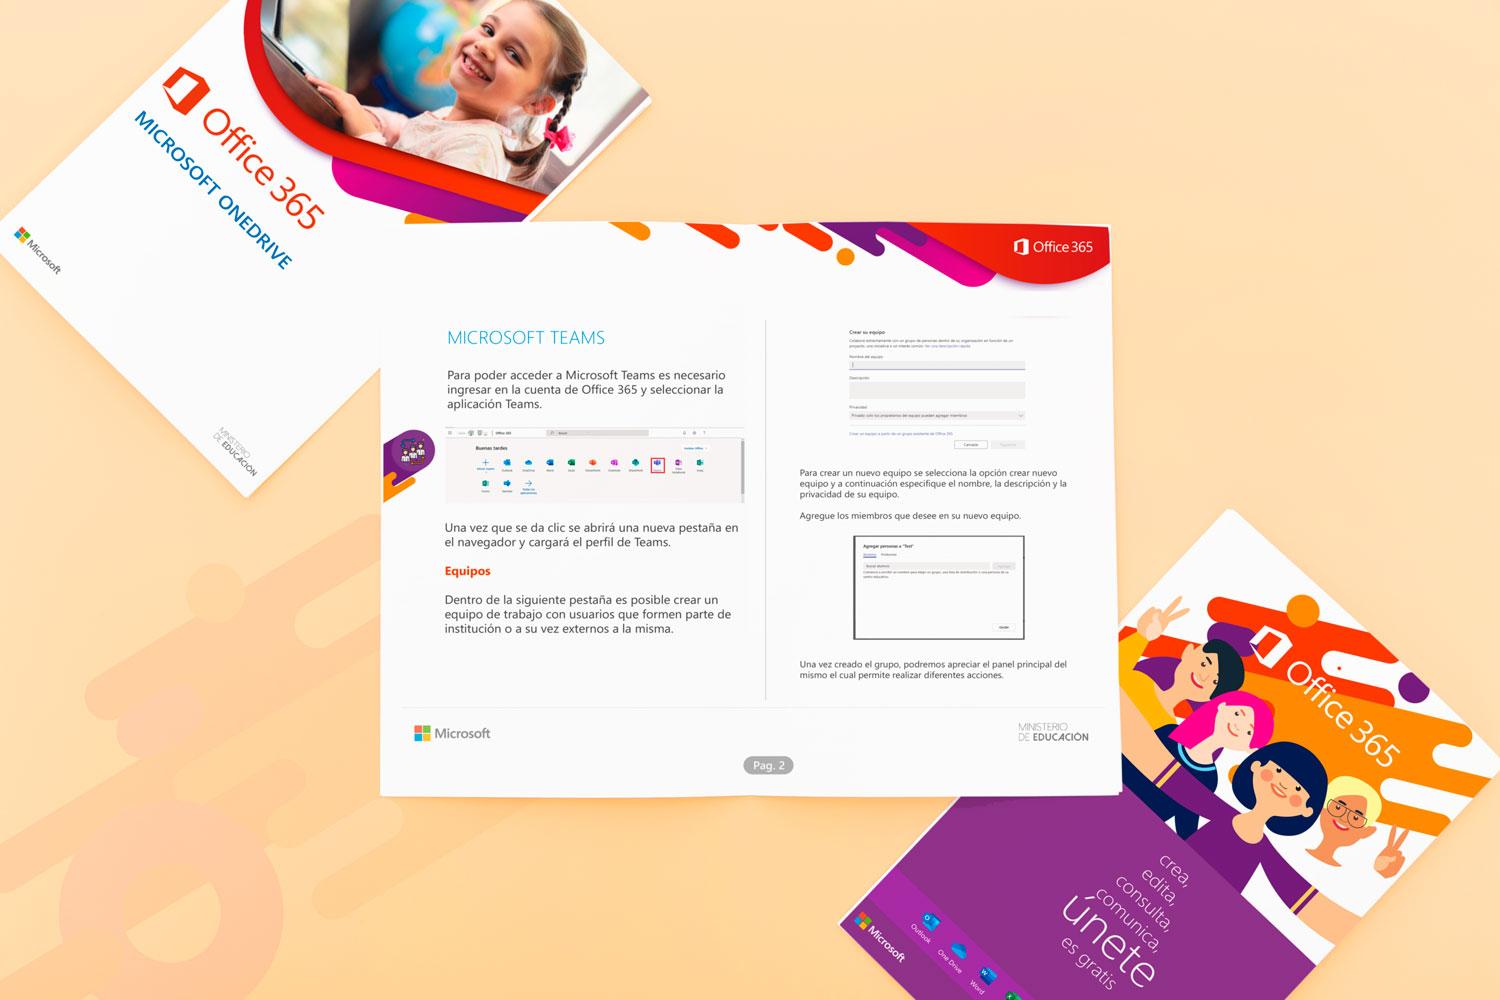 manuales ofice 365 elearning branding quito